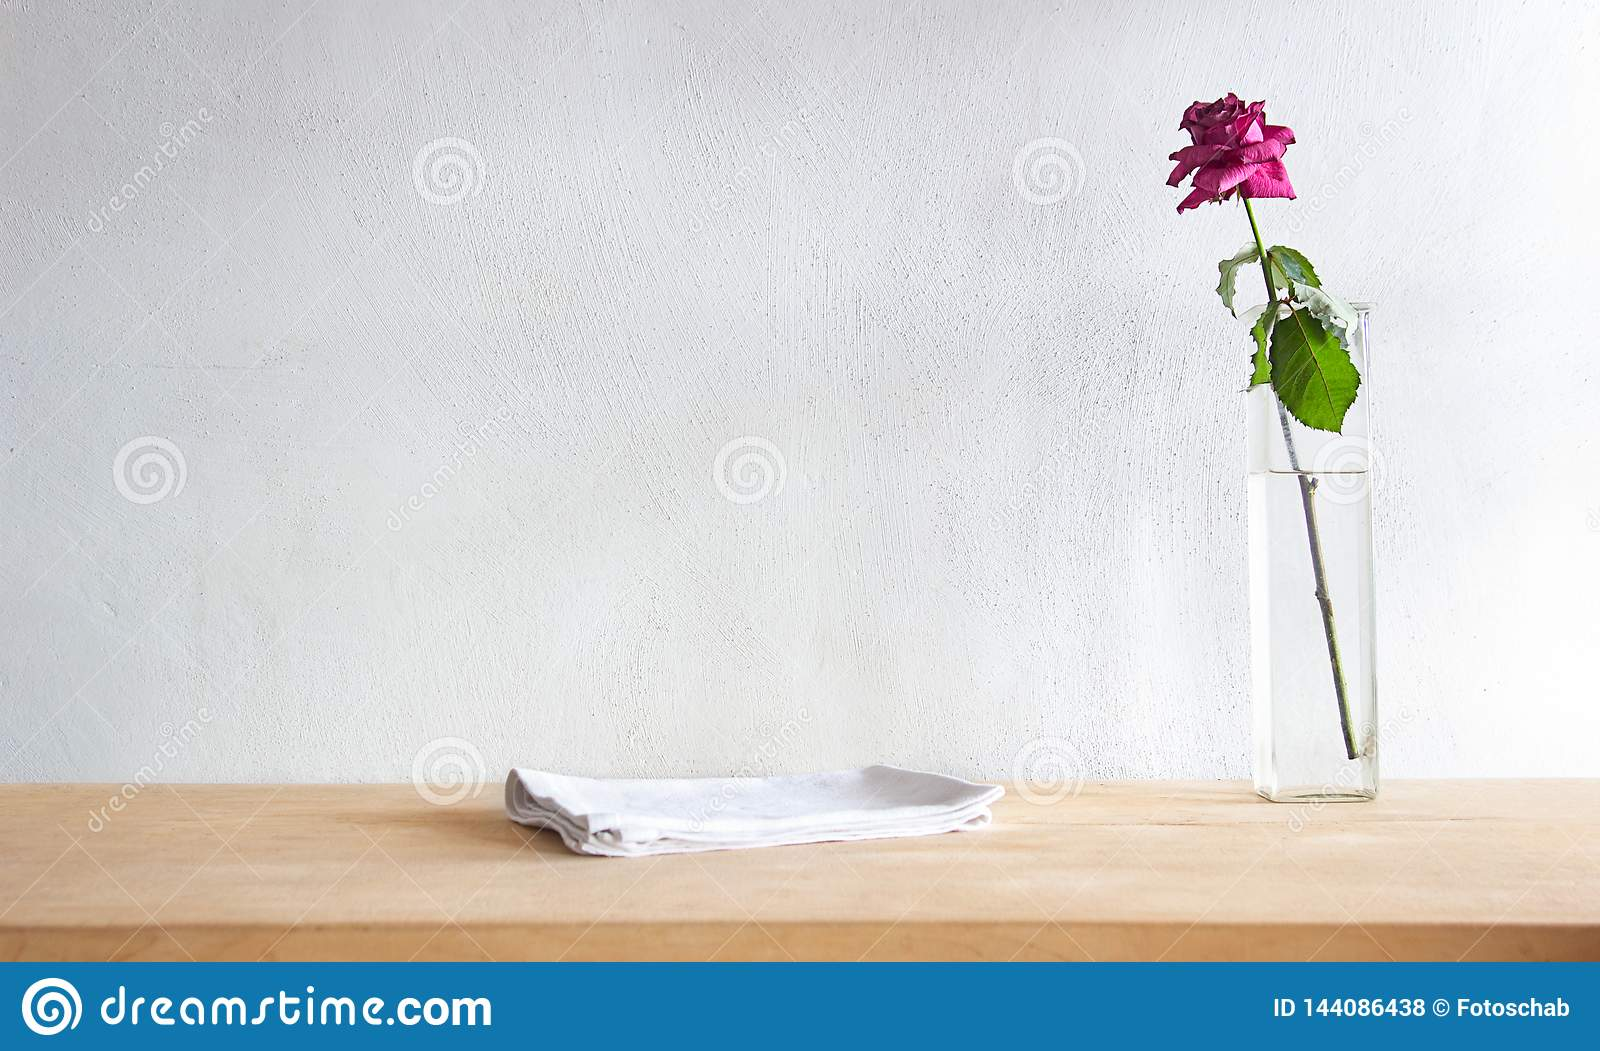 Rustic table with a white table linen and red, dried rose against grunge cement wall.